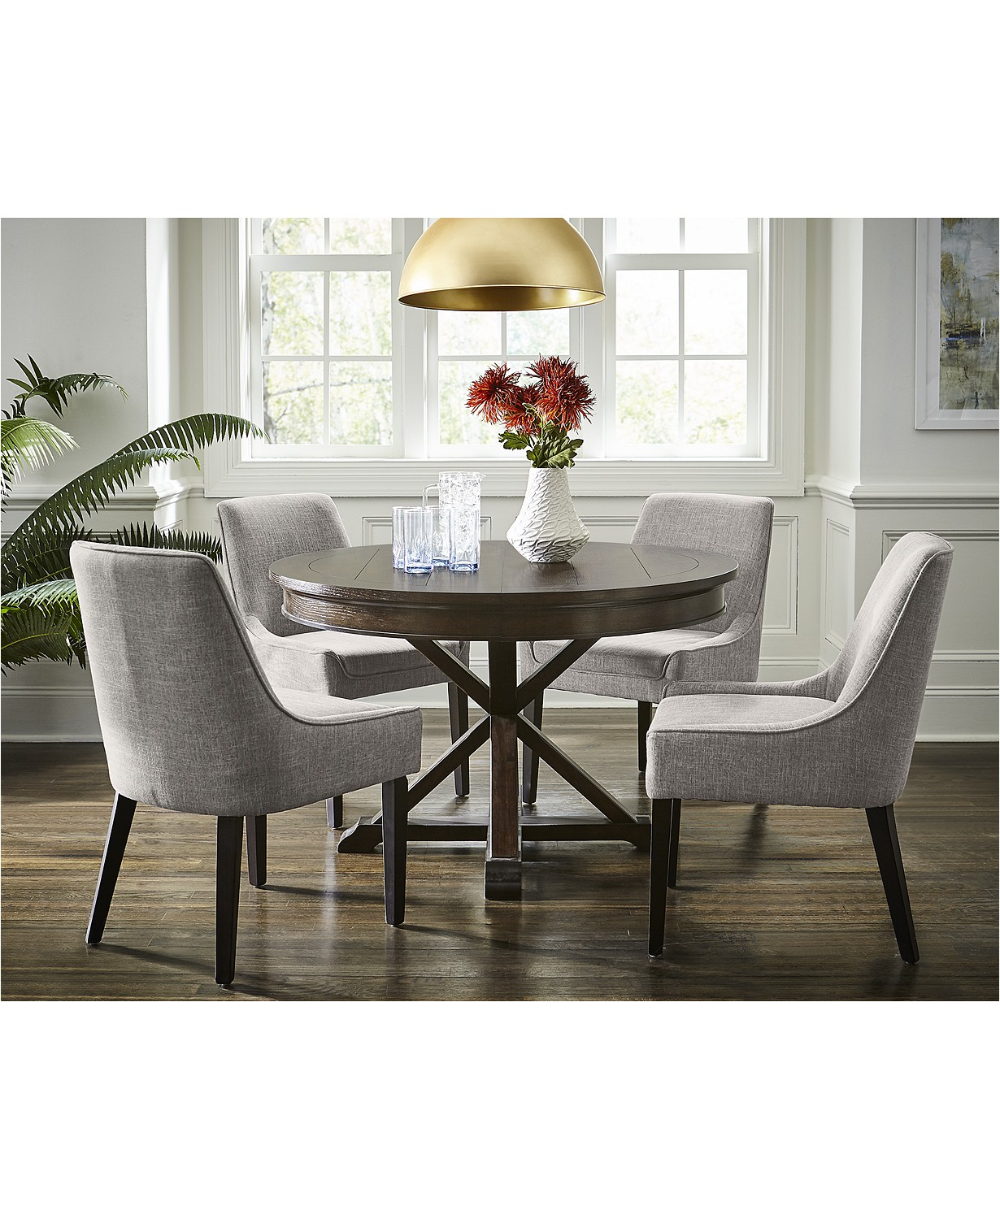 Furniture Everly Dining Chair, 4-Pc. Set  (4 Square Back Side Chairs), Created for Macy's & Reviews - Furniture - Macy's